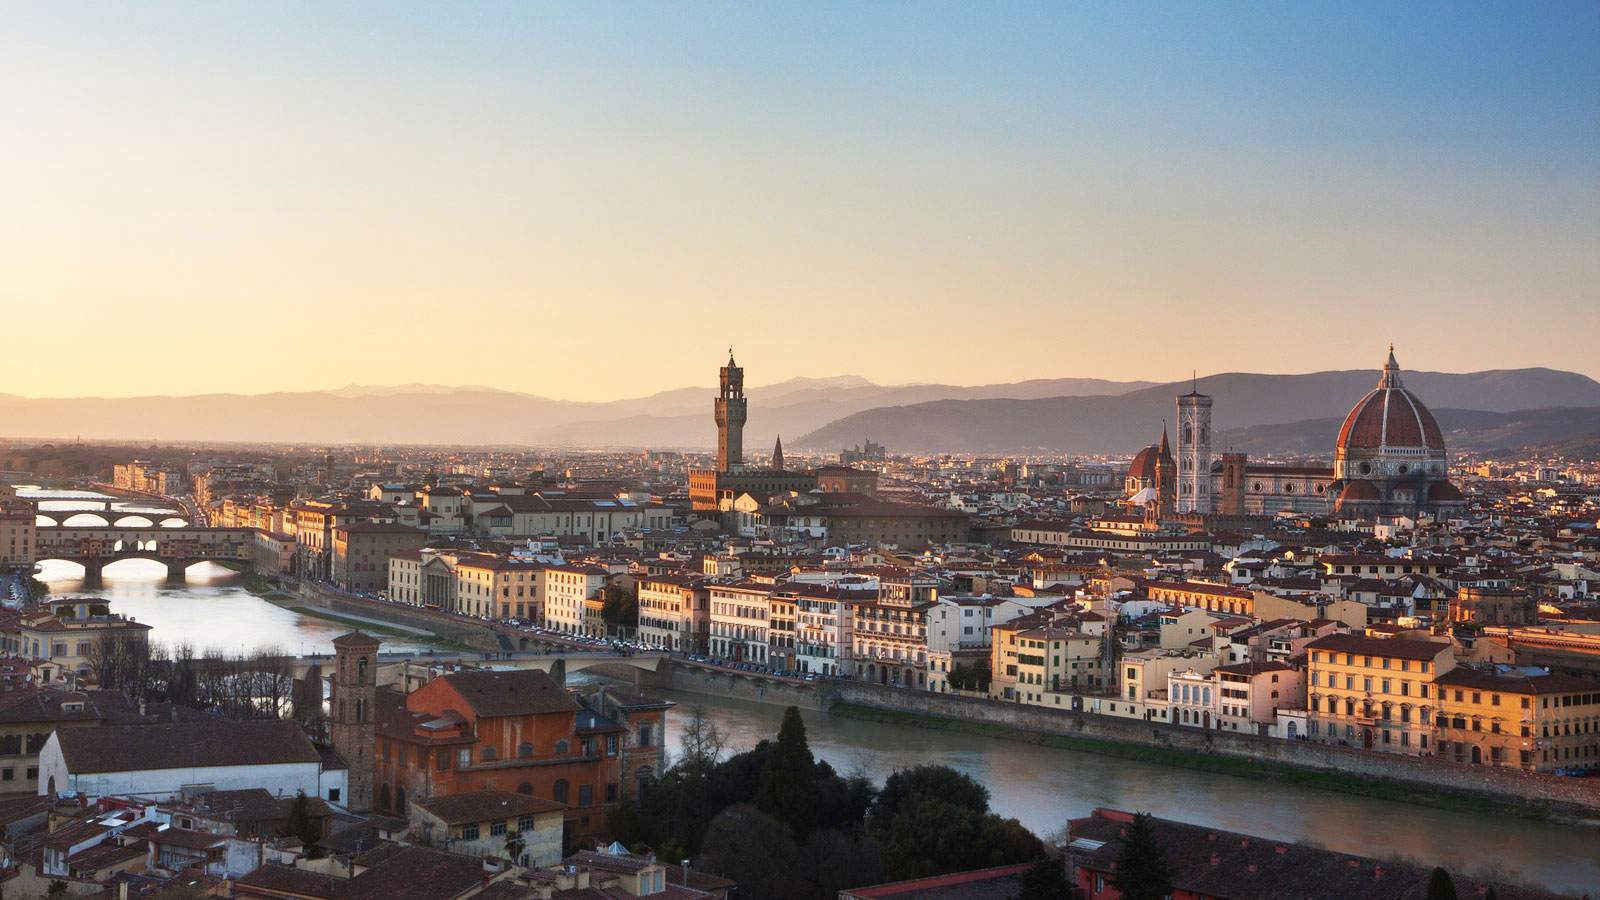 ACES2017 in Florence, Italy, March 26-30 2017